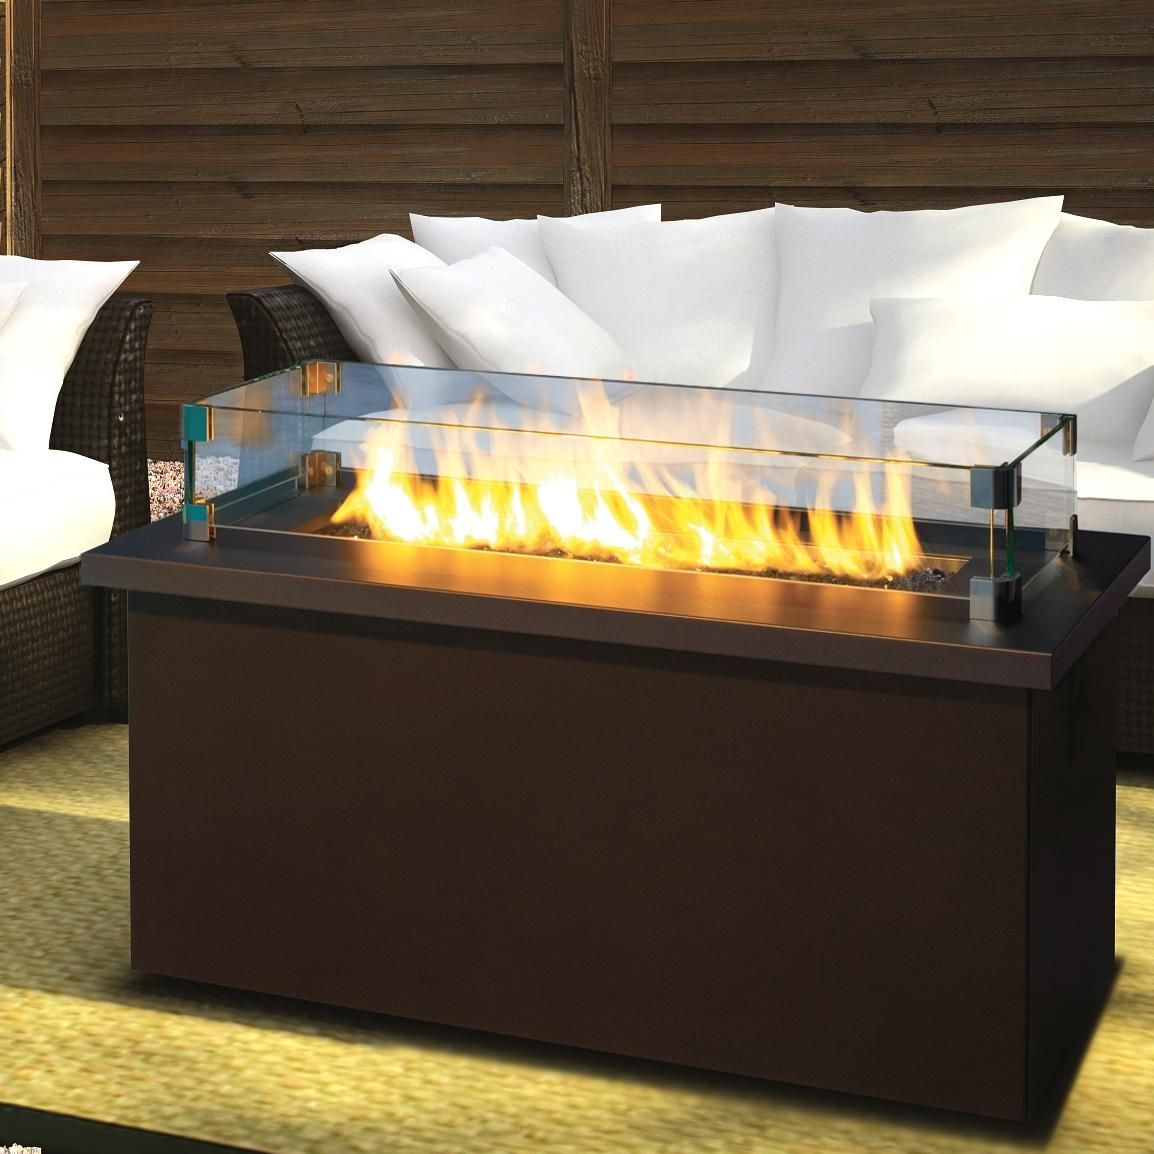 Firegear Key West Propane Gas Fire Pit Coffee Table With Bronze Top